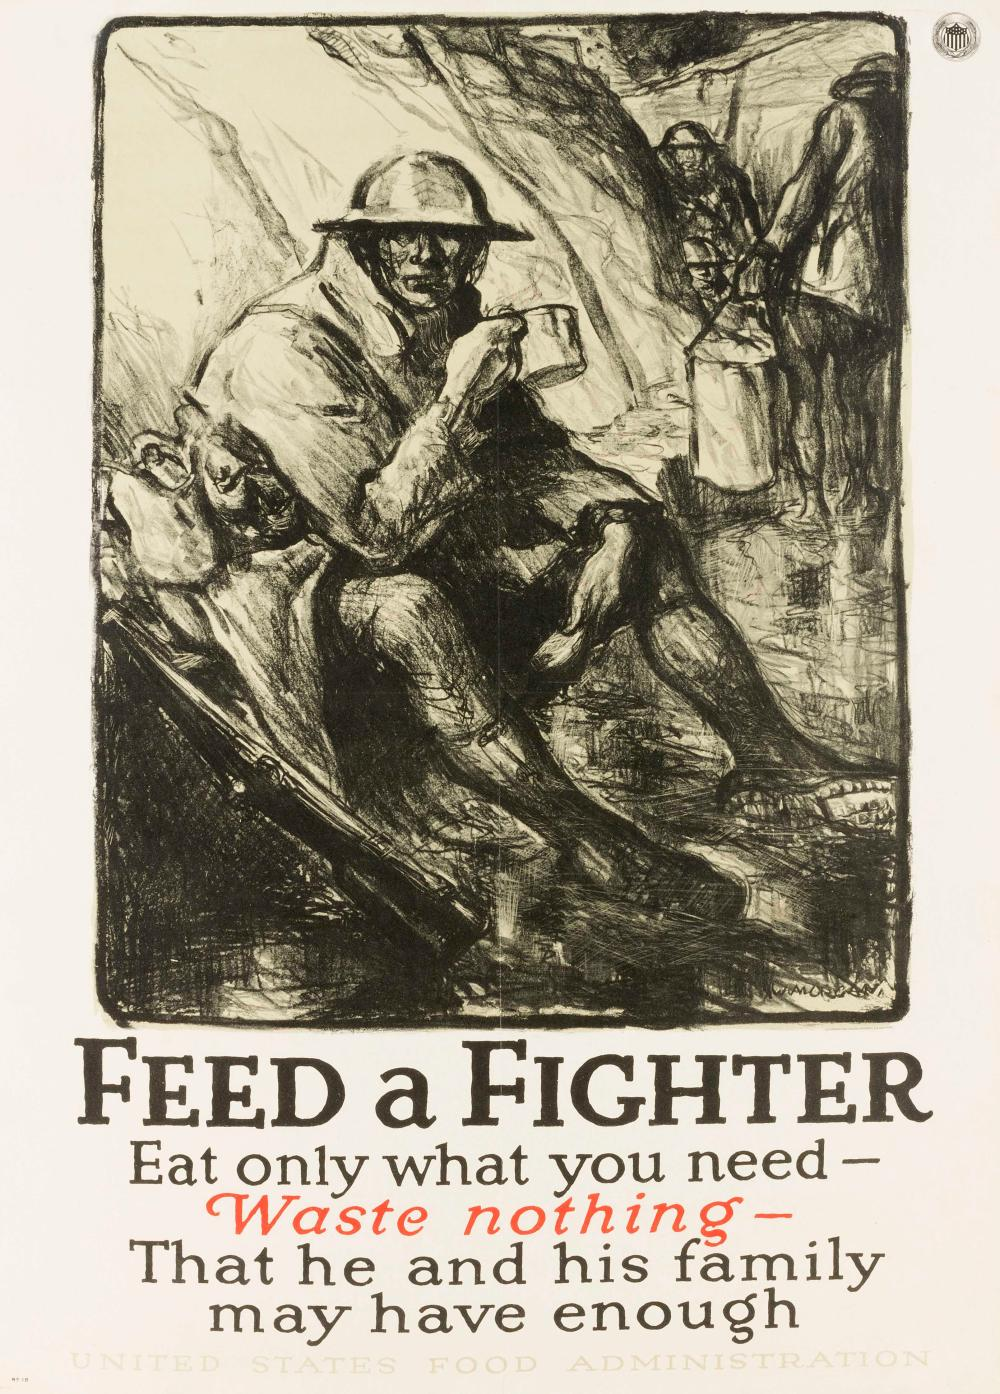 """""""FEED A FIGHTER EAT ONLY WHAT YOU NEED - WASTE NOTHING - THAT HE AND HIS FAMILY MAY HAVE ENOUGH"""" WORLD WAR I POSTER By Wallace Morga..."""